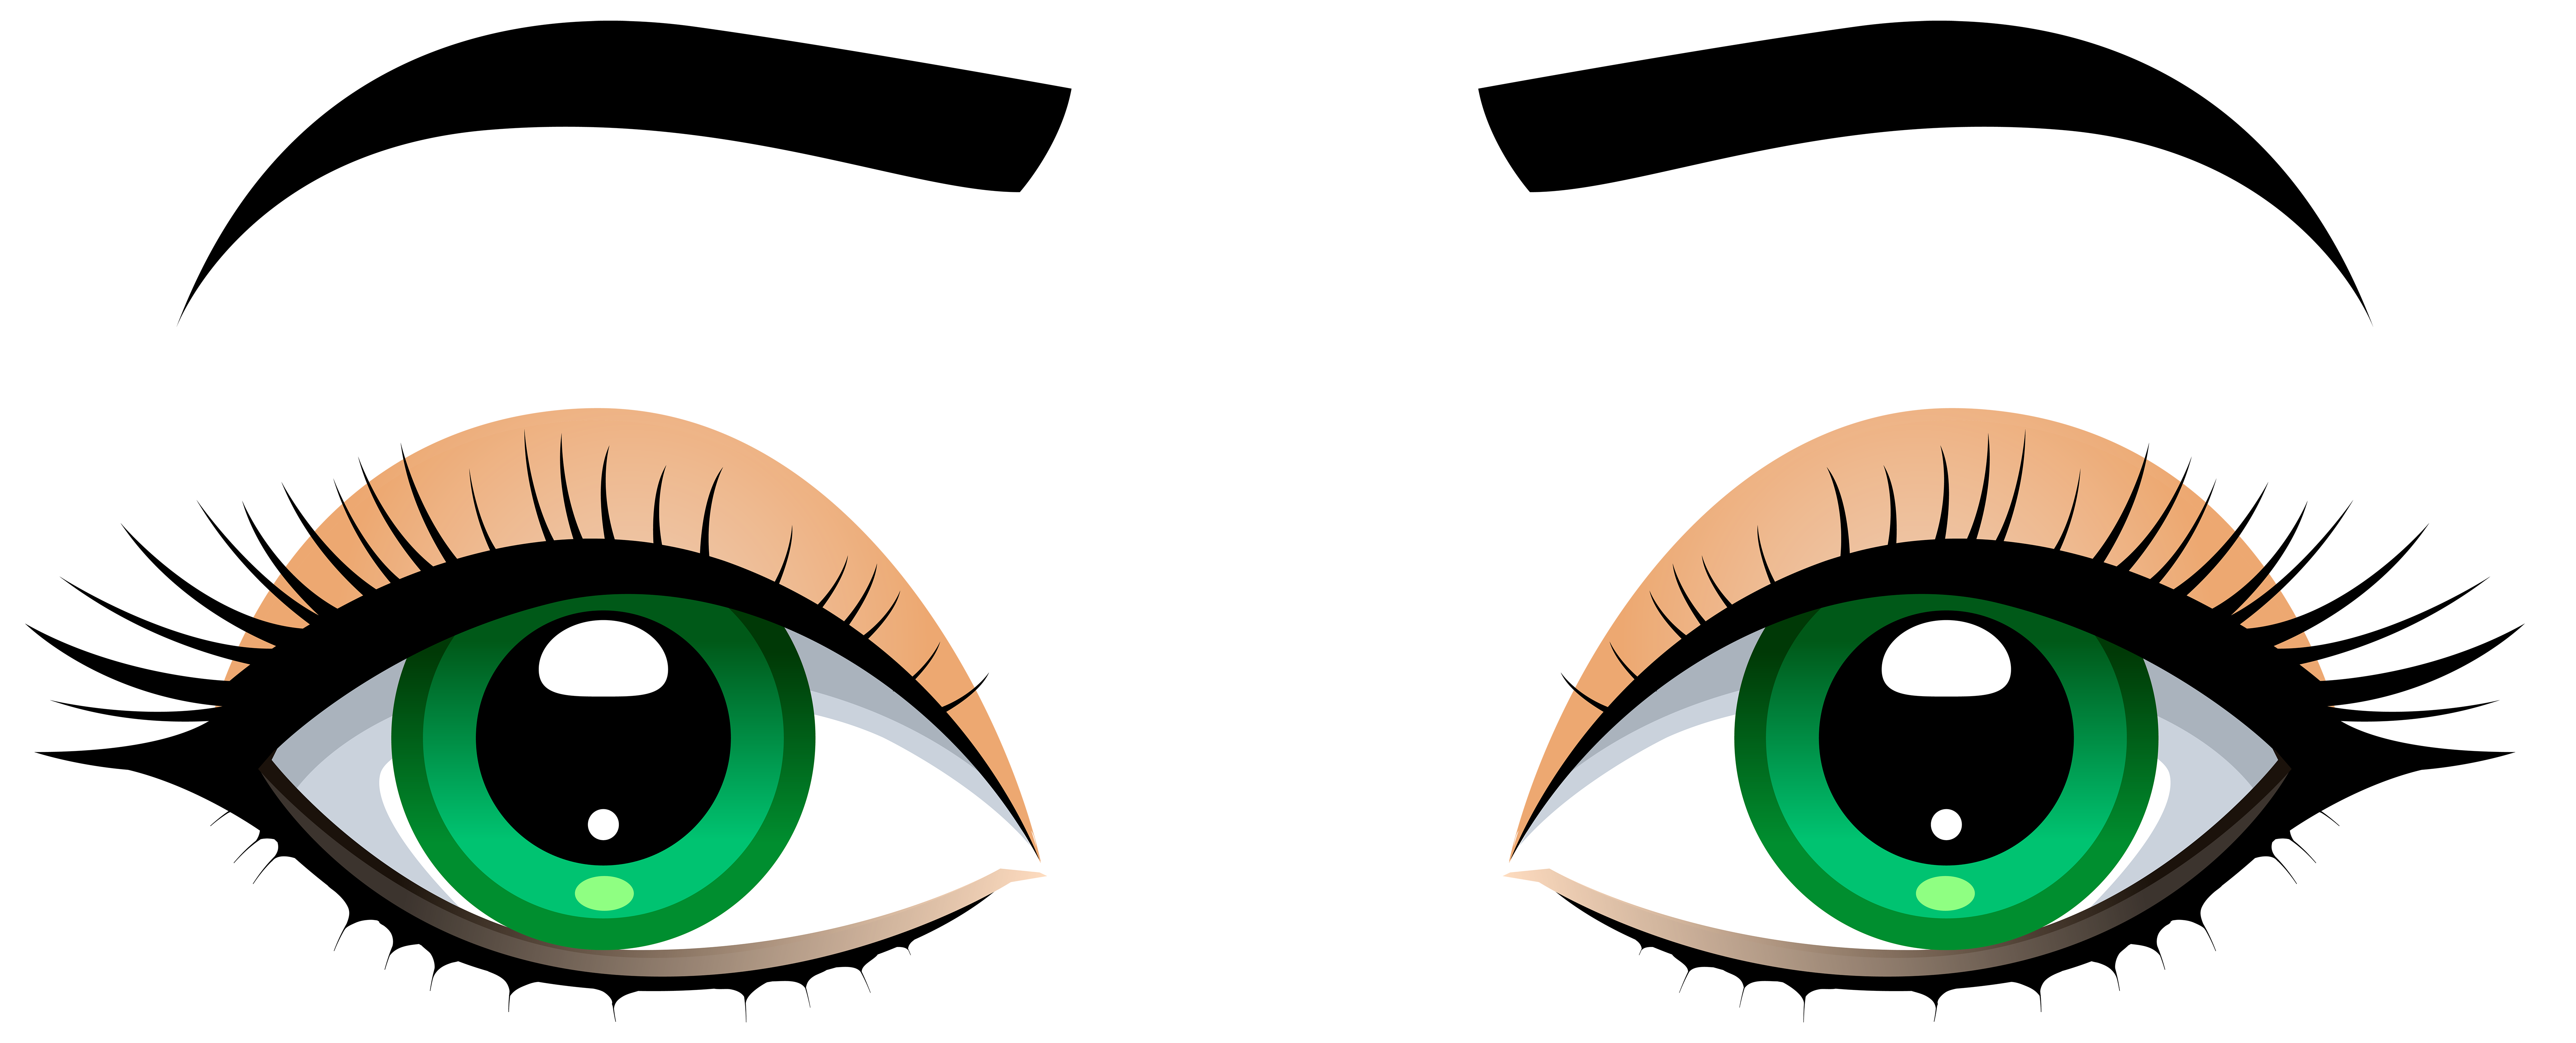 Eyebrow clipart eyebrow shape. Female eyes with eyebrows